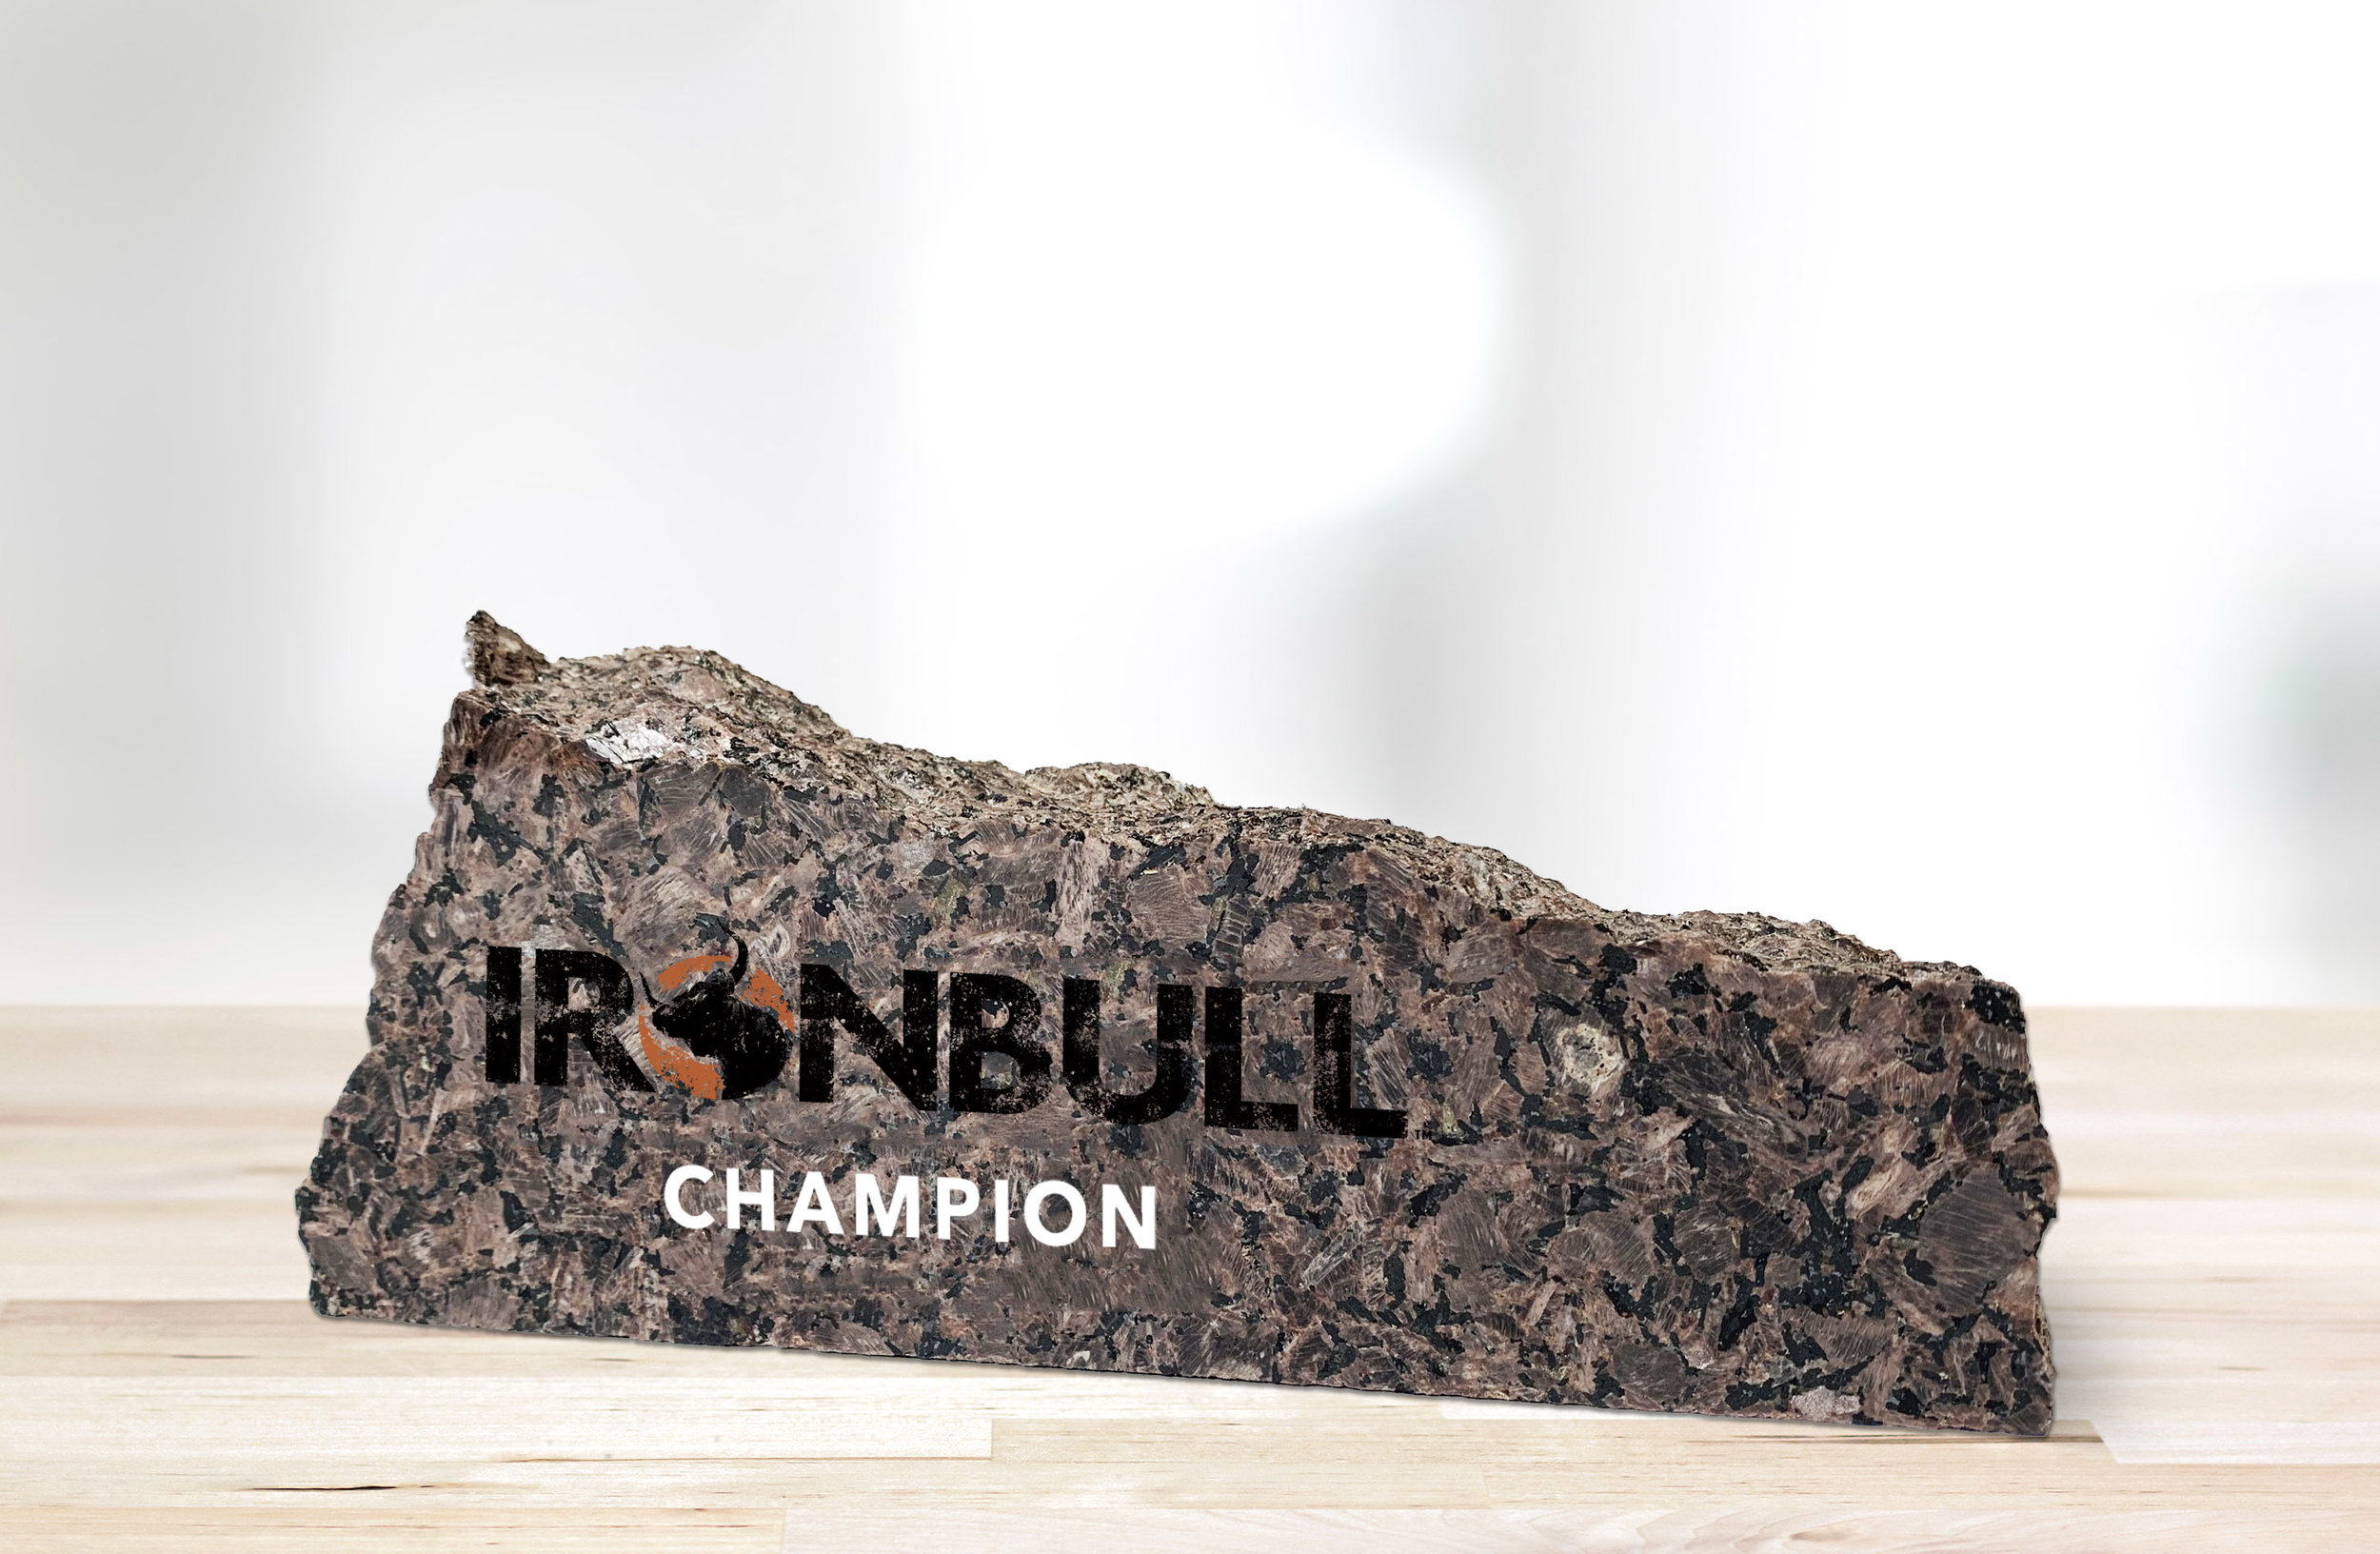 """The IRONBULL™ Ring Trophy, a chiseled piece of red granite displaying the IRONBULL™ logo and the word """"Champion,"""" sits on a wooden table."""